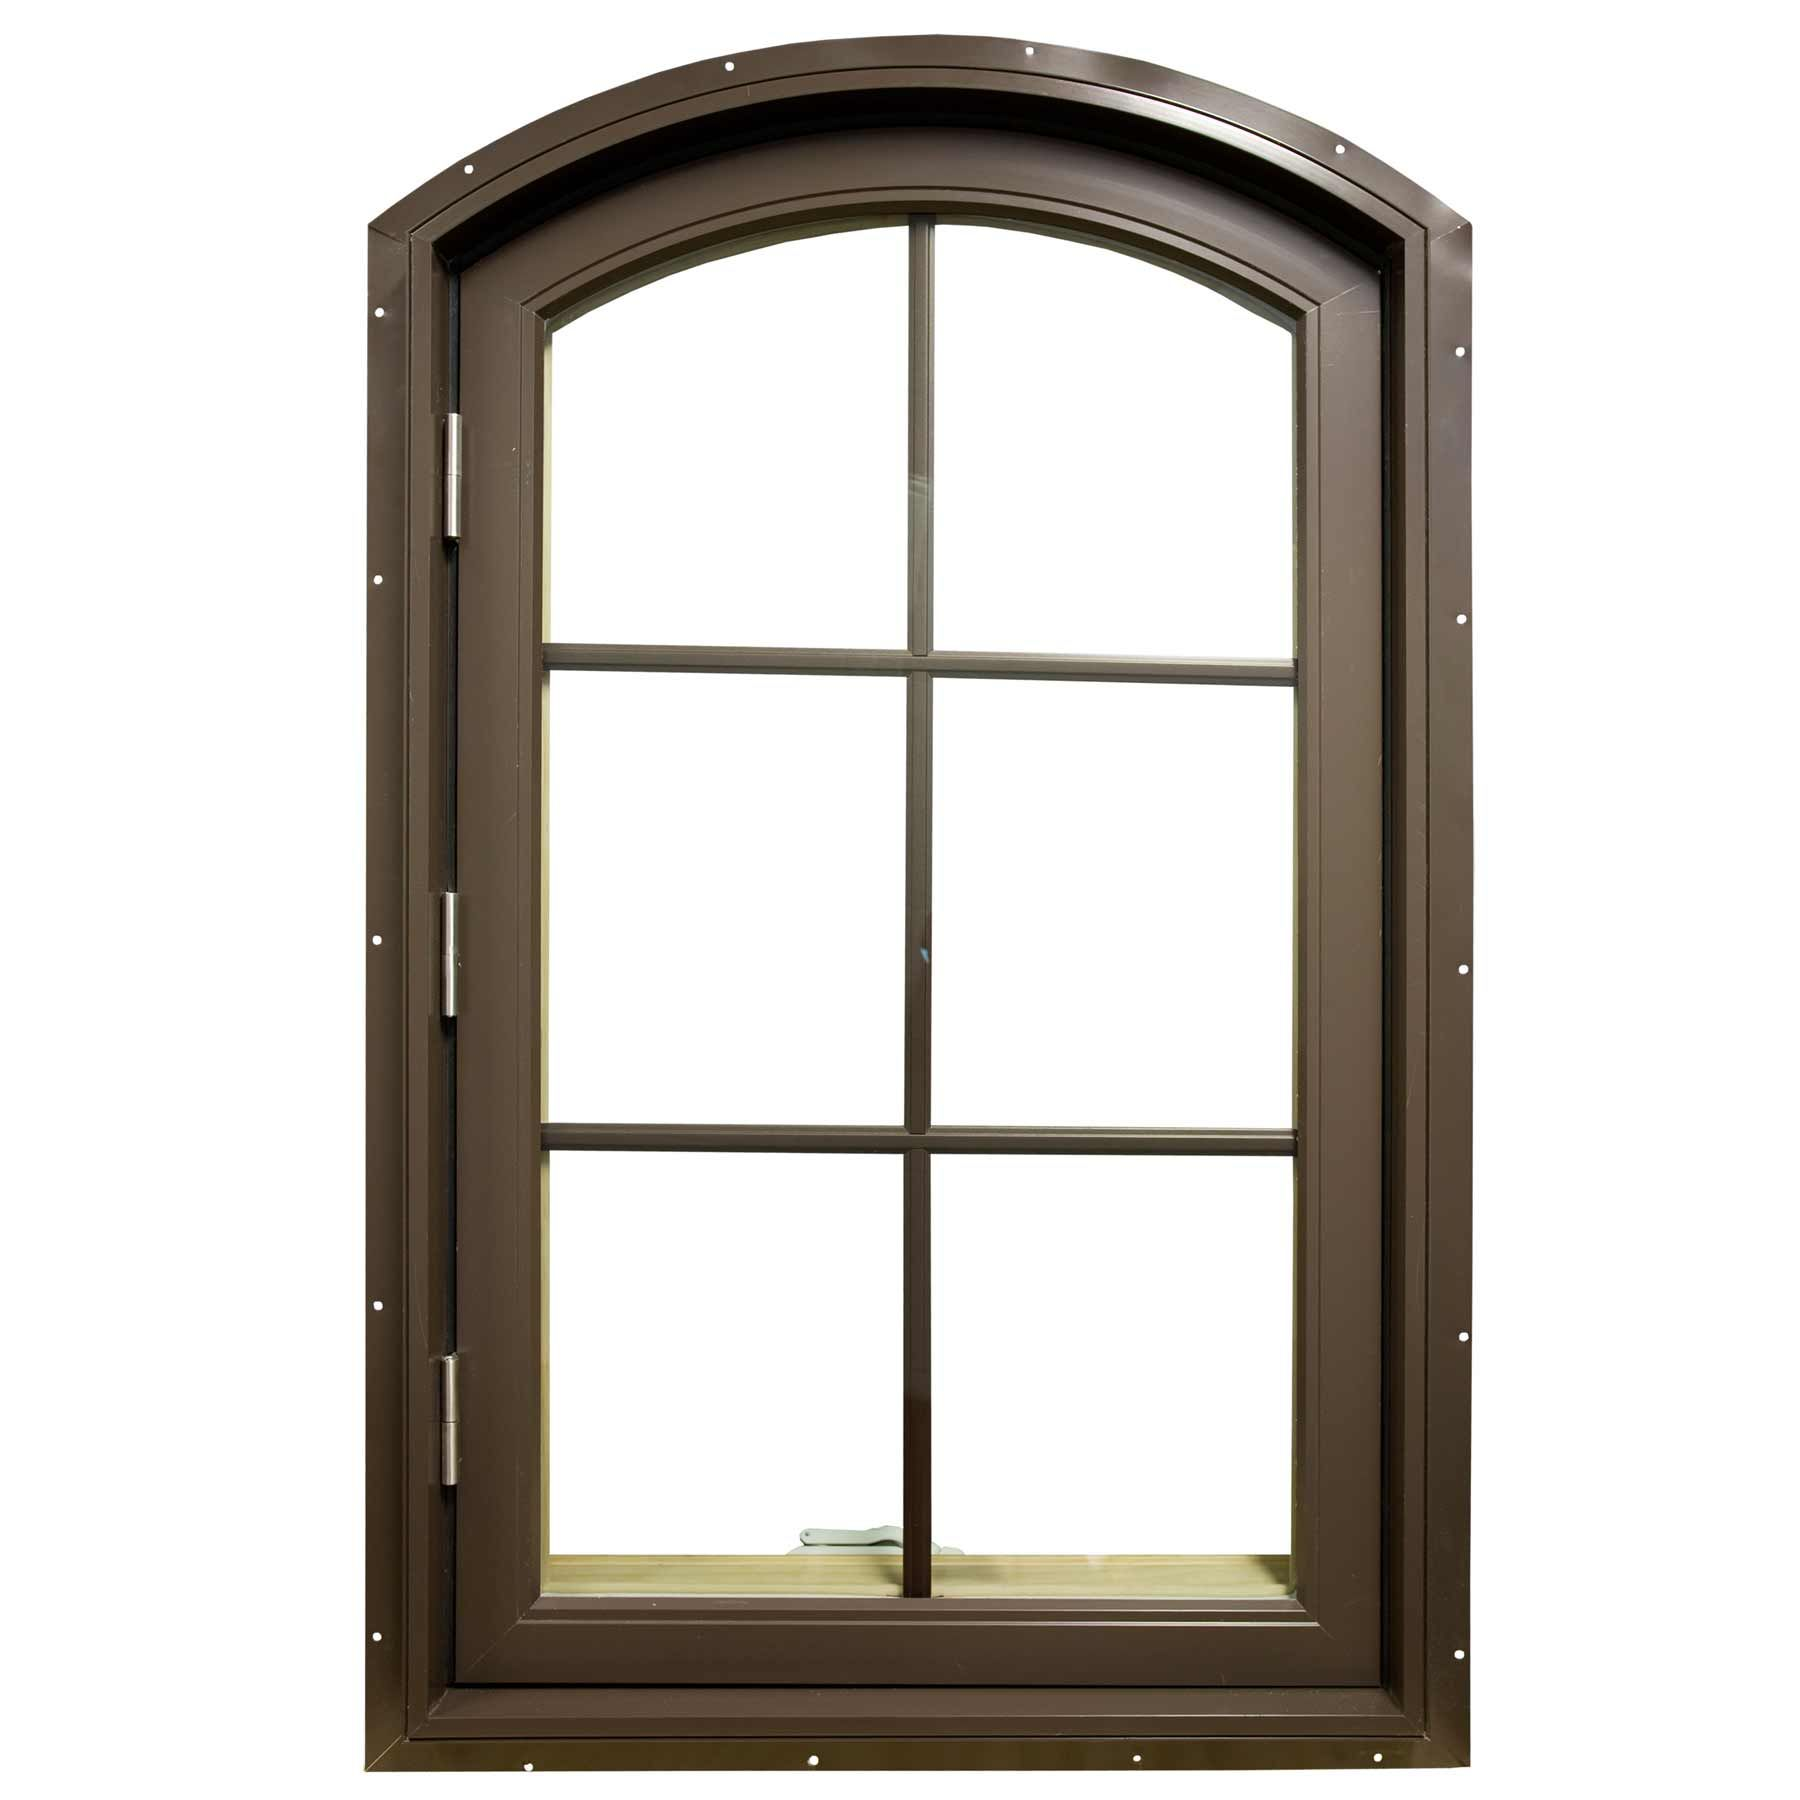 Aluminum casement windows for home feel the home for Home with windows